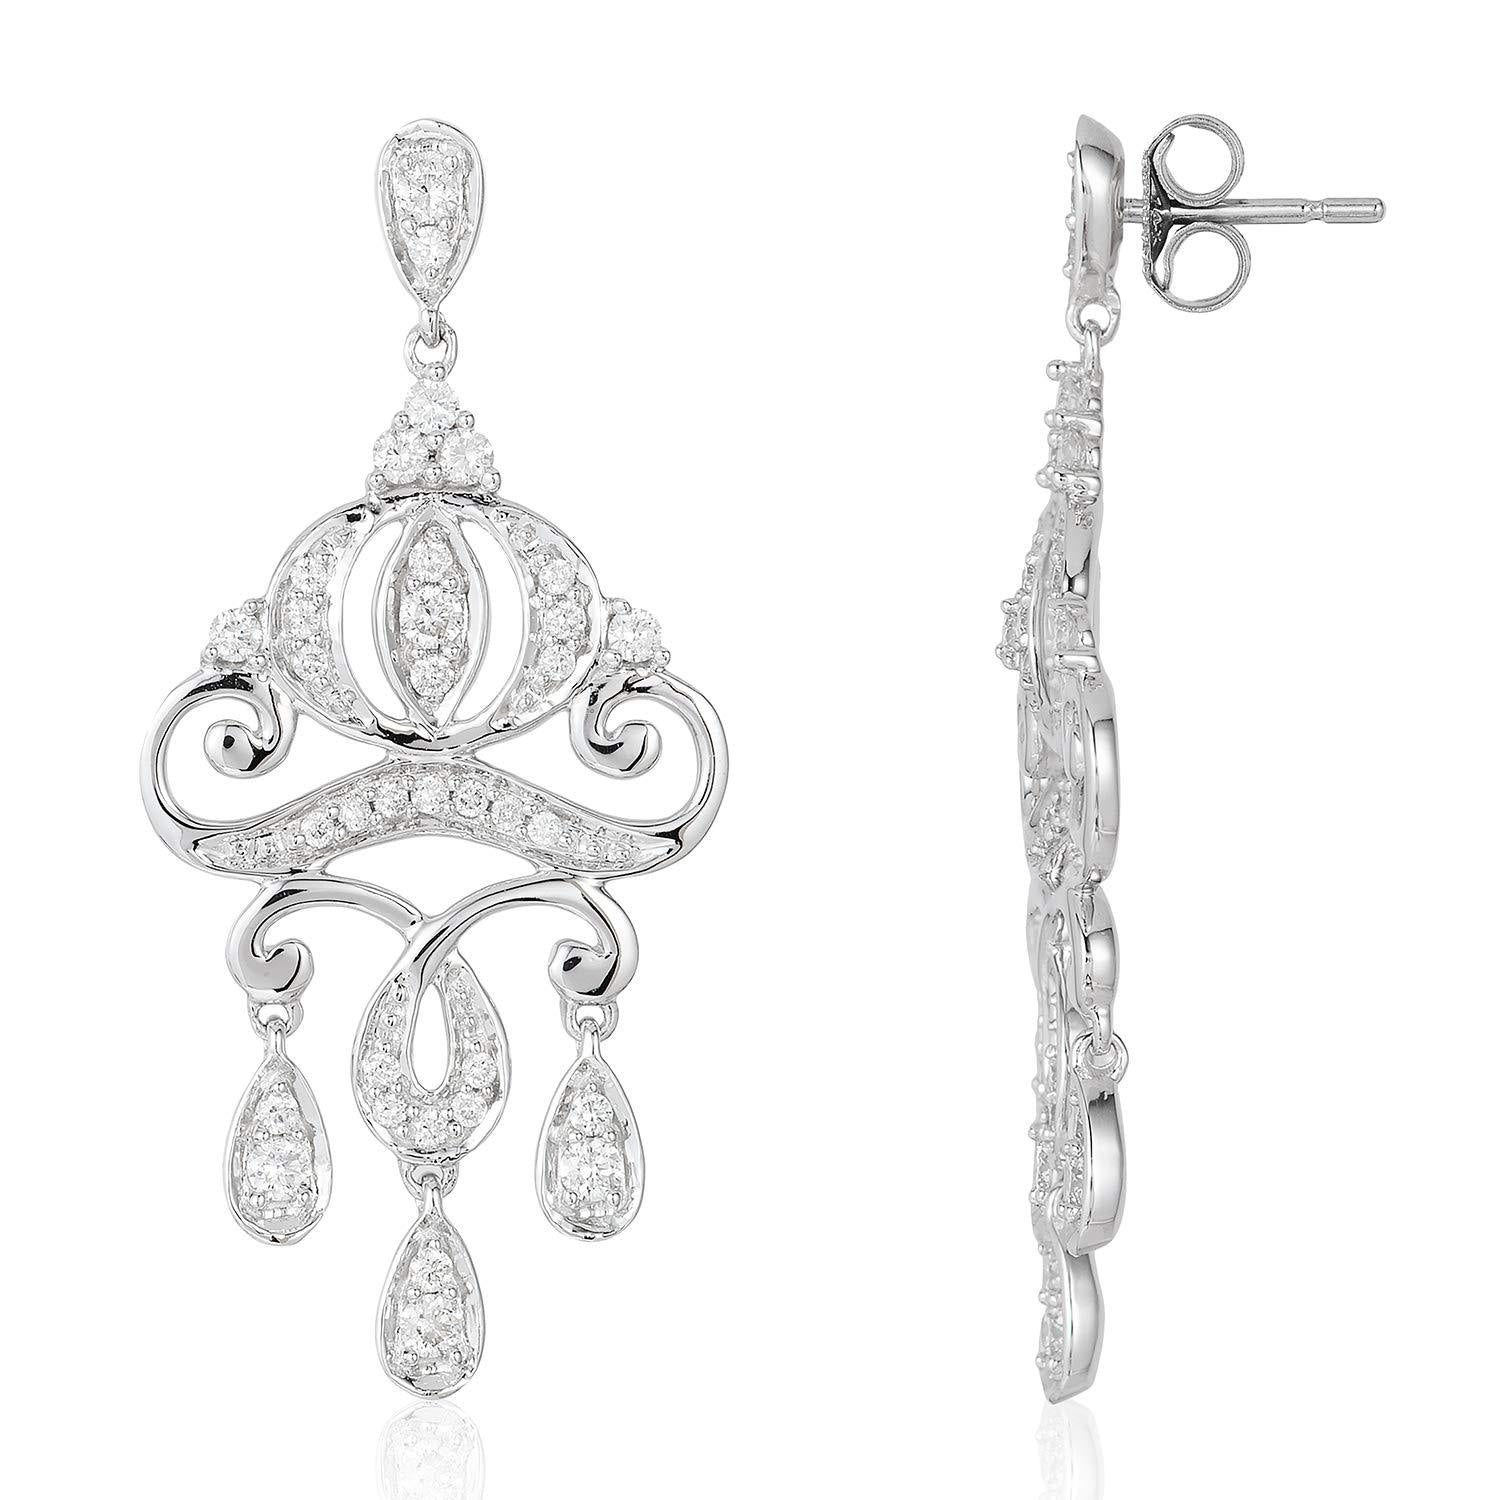 enchanted_disney-cinderella-white_diamond_carriage_earrings-white_gold_1/2CTTW_1